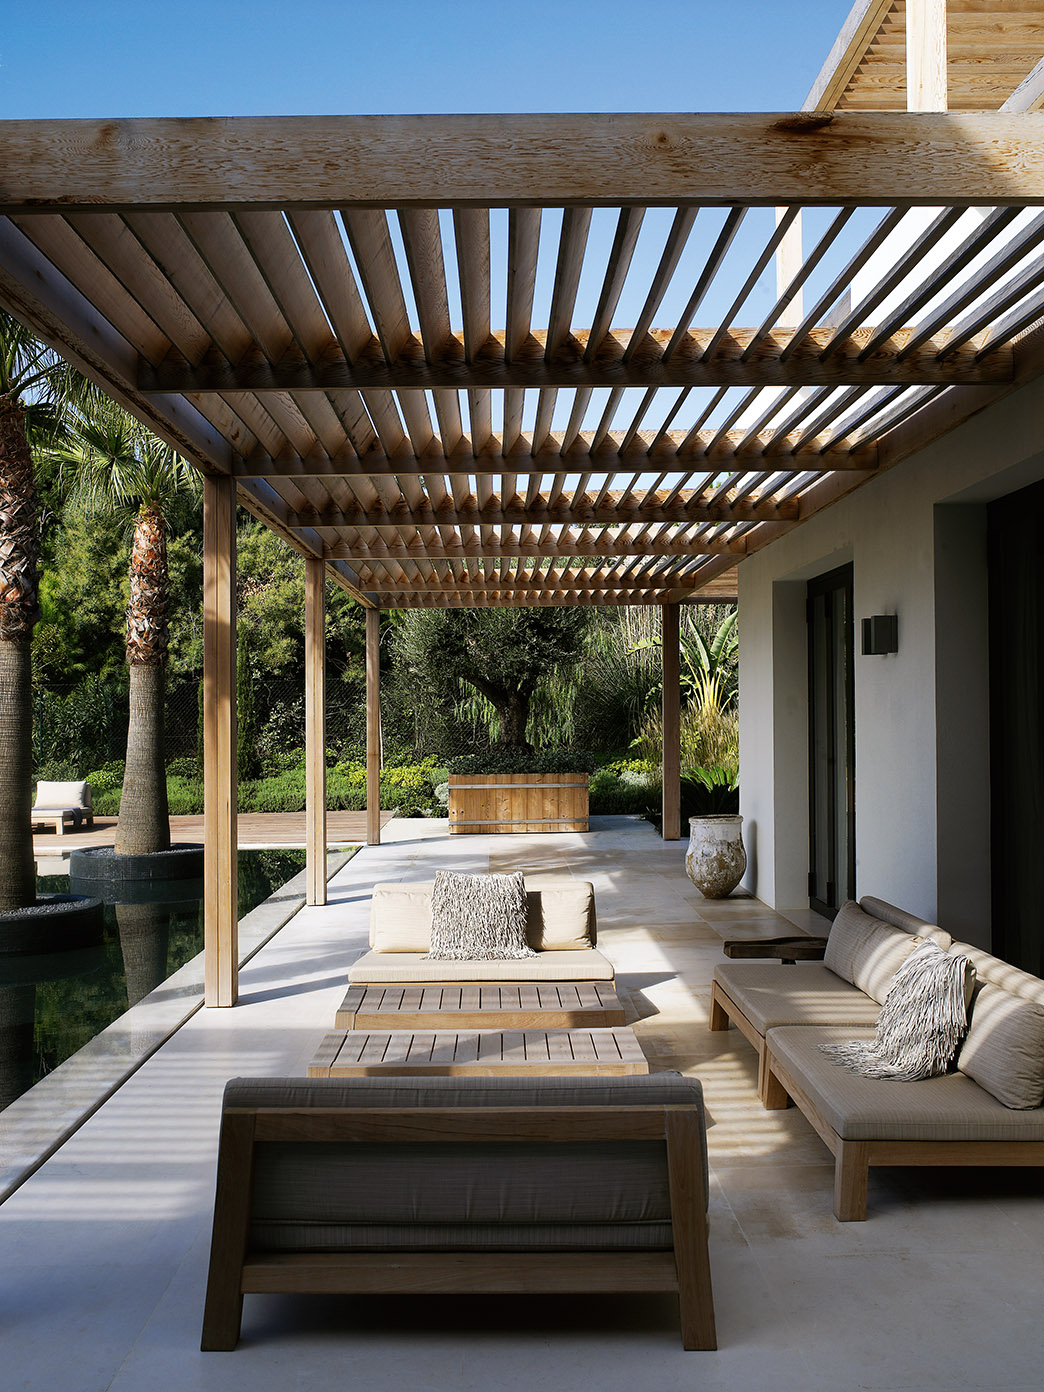 South coast villa with GIJS loveseat and ANNET coffee table